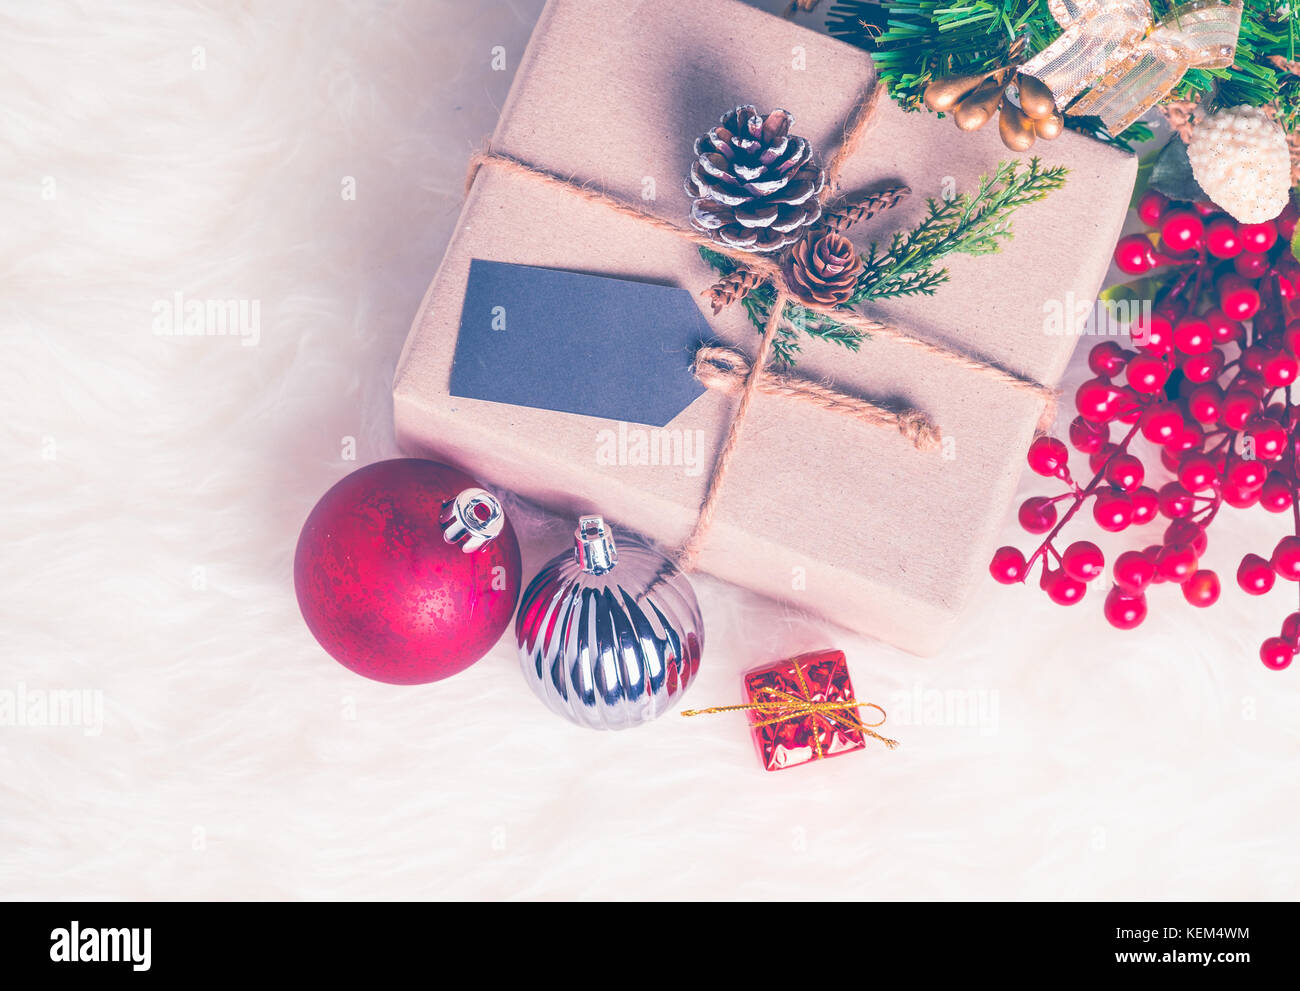 Brown paper craft warped on present box with label tag decorate with pine cone and christmas ball under xmas tree,Gift - Stock Image